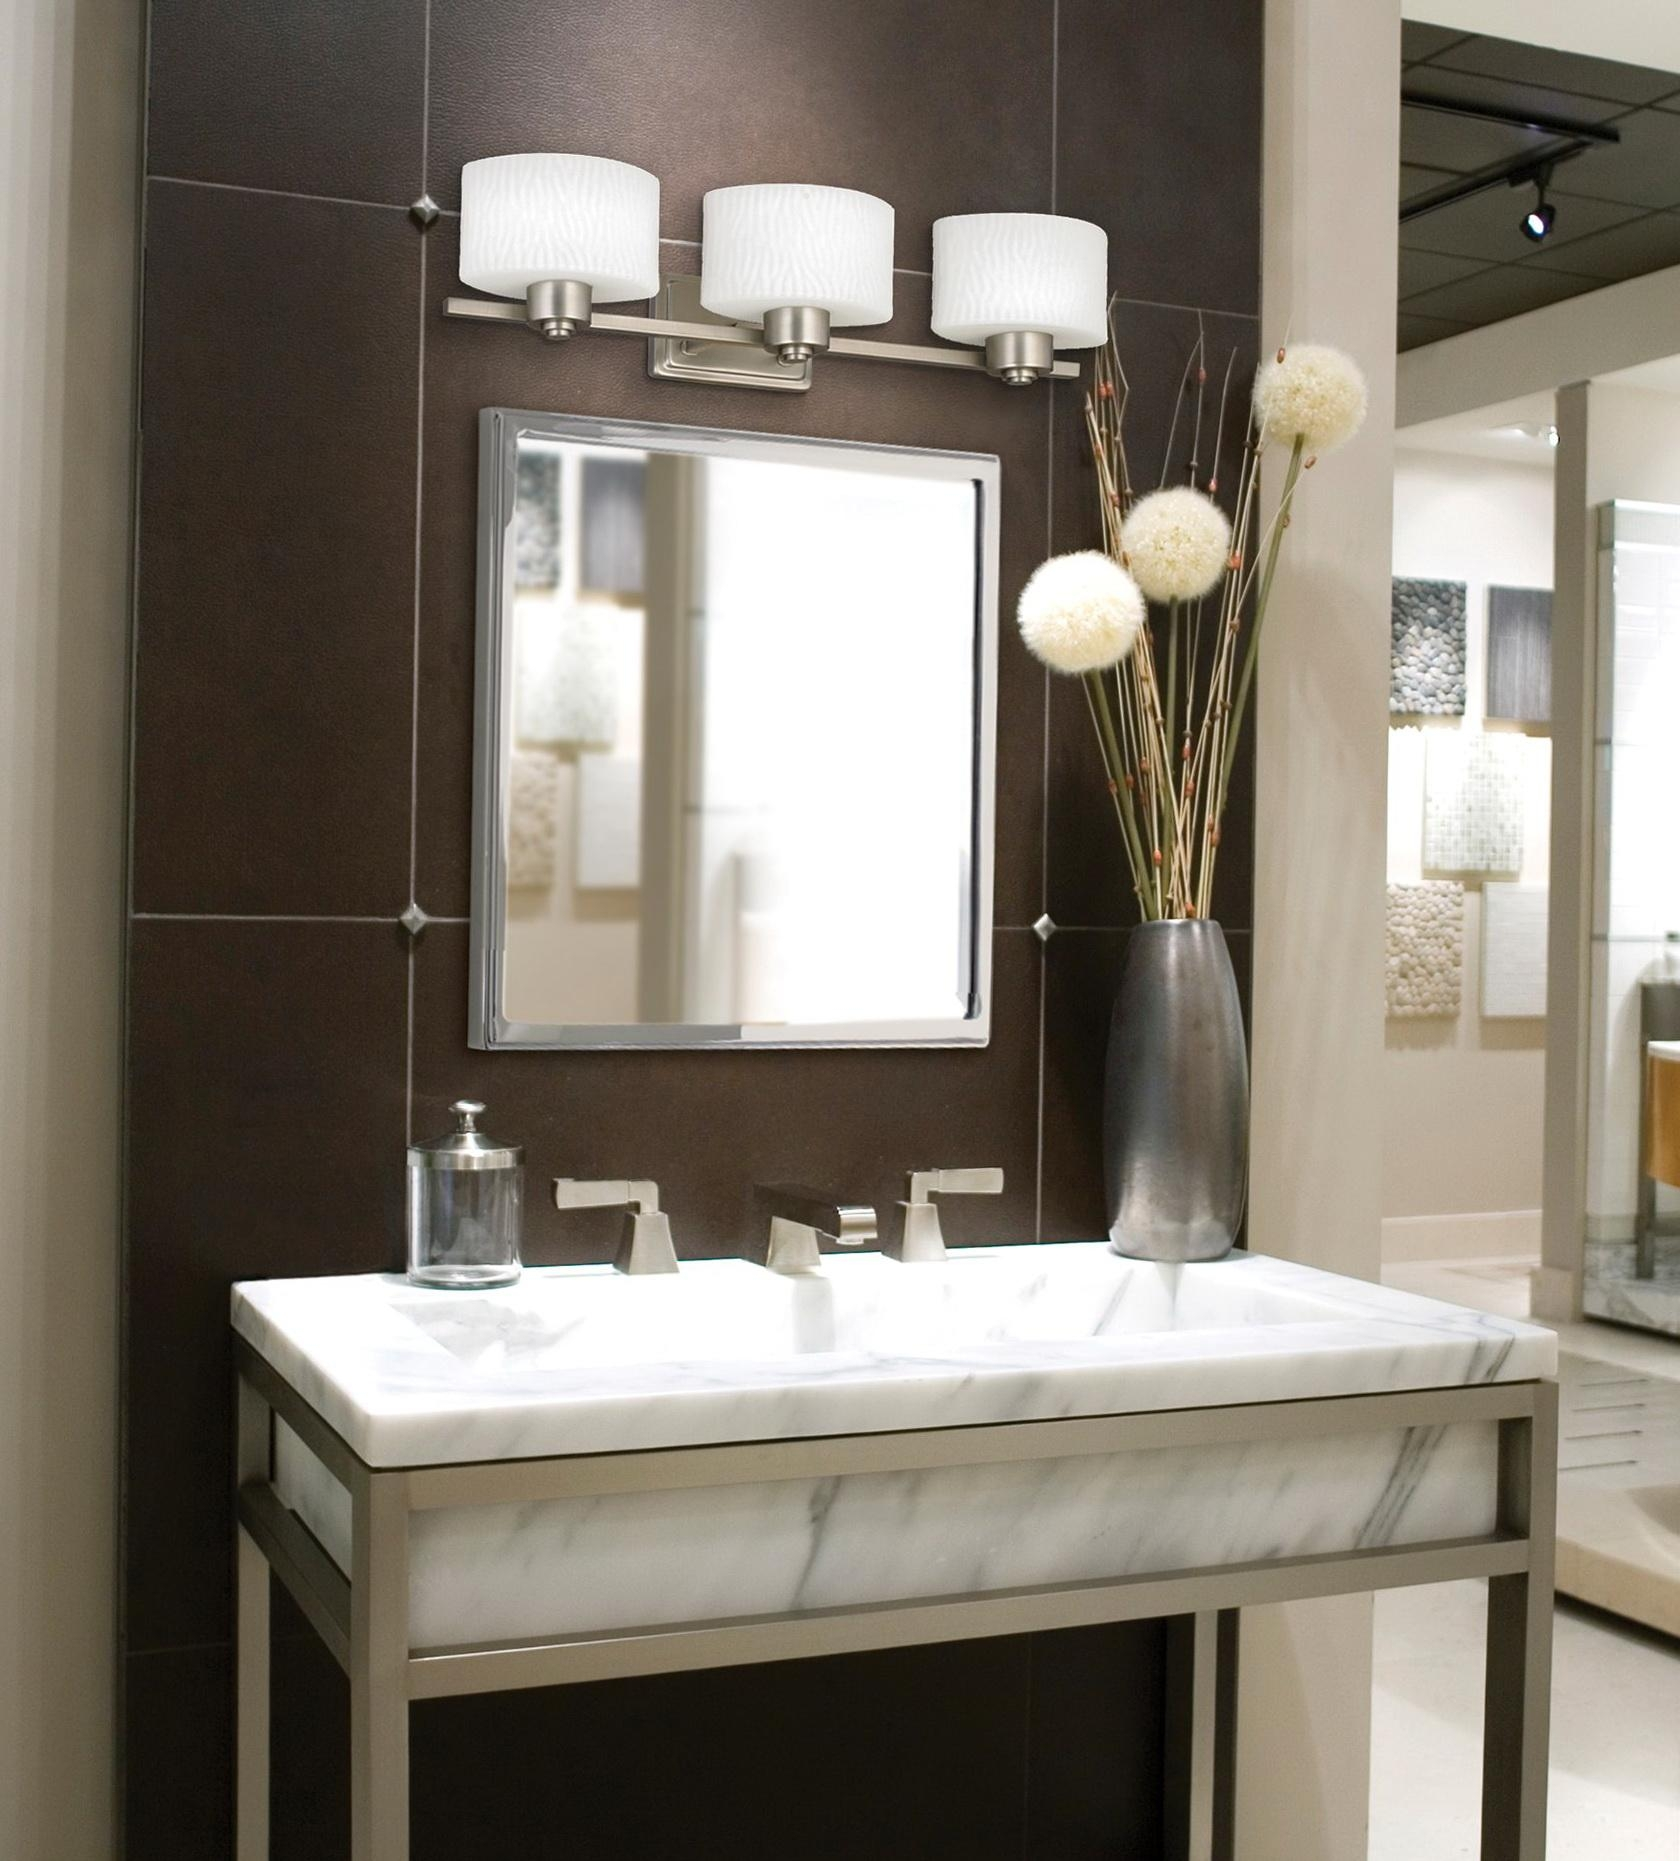 Wondrous Bathroom Vanity Mirrors For Com Ideas Brushed Nickel Intended For Bathroom Cabinets Mirrors (Image 20 of 20)